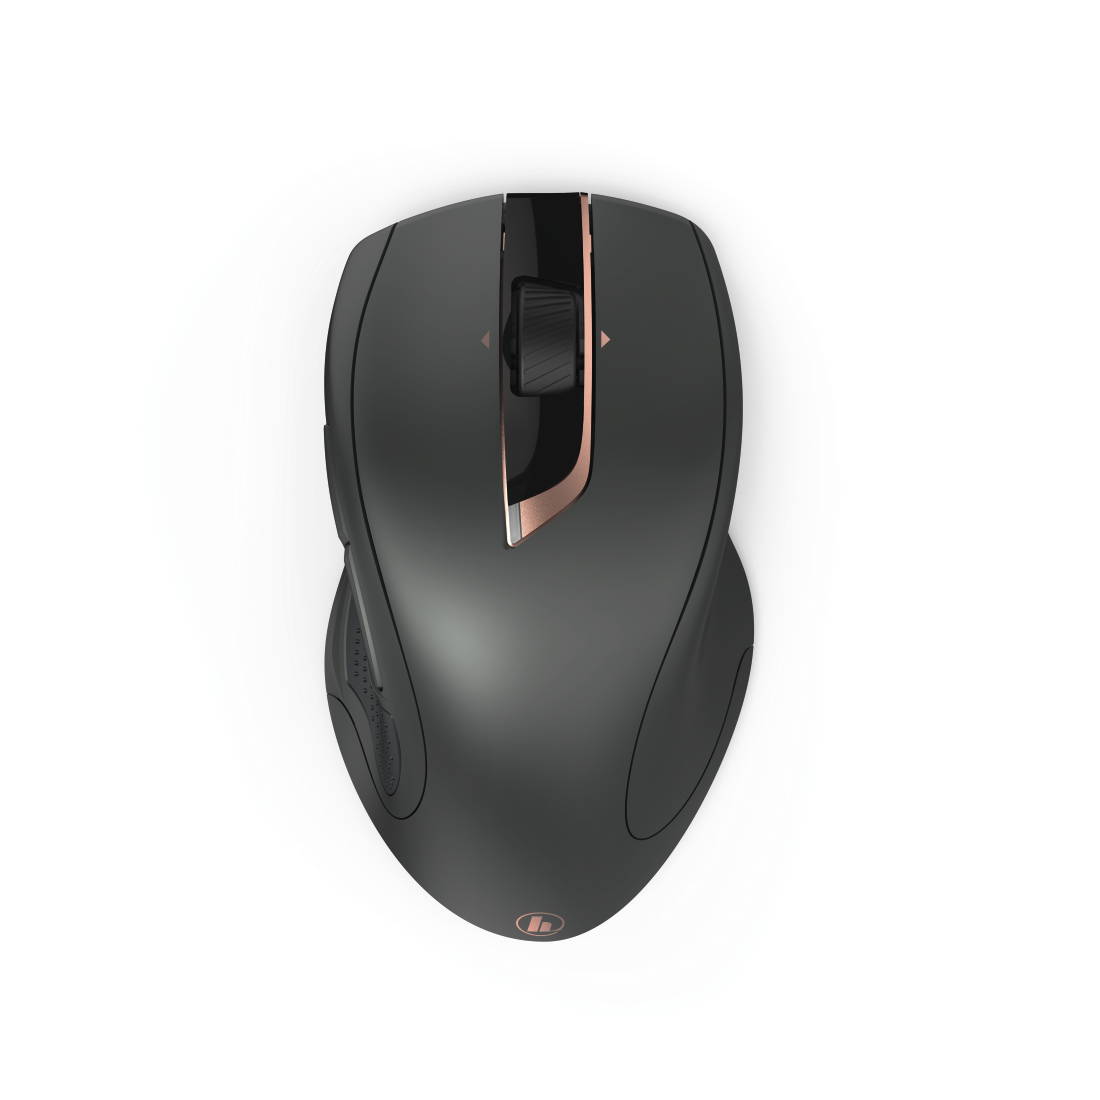 abx2 High-Res Image 2 - Hama, 7-Button Mouse MW-900, black